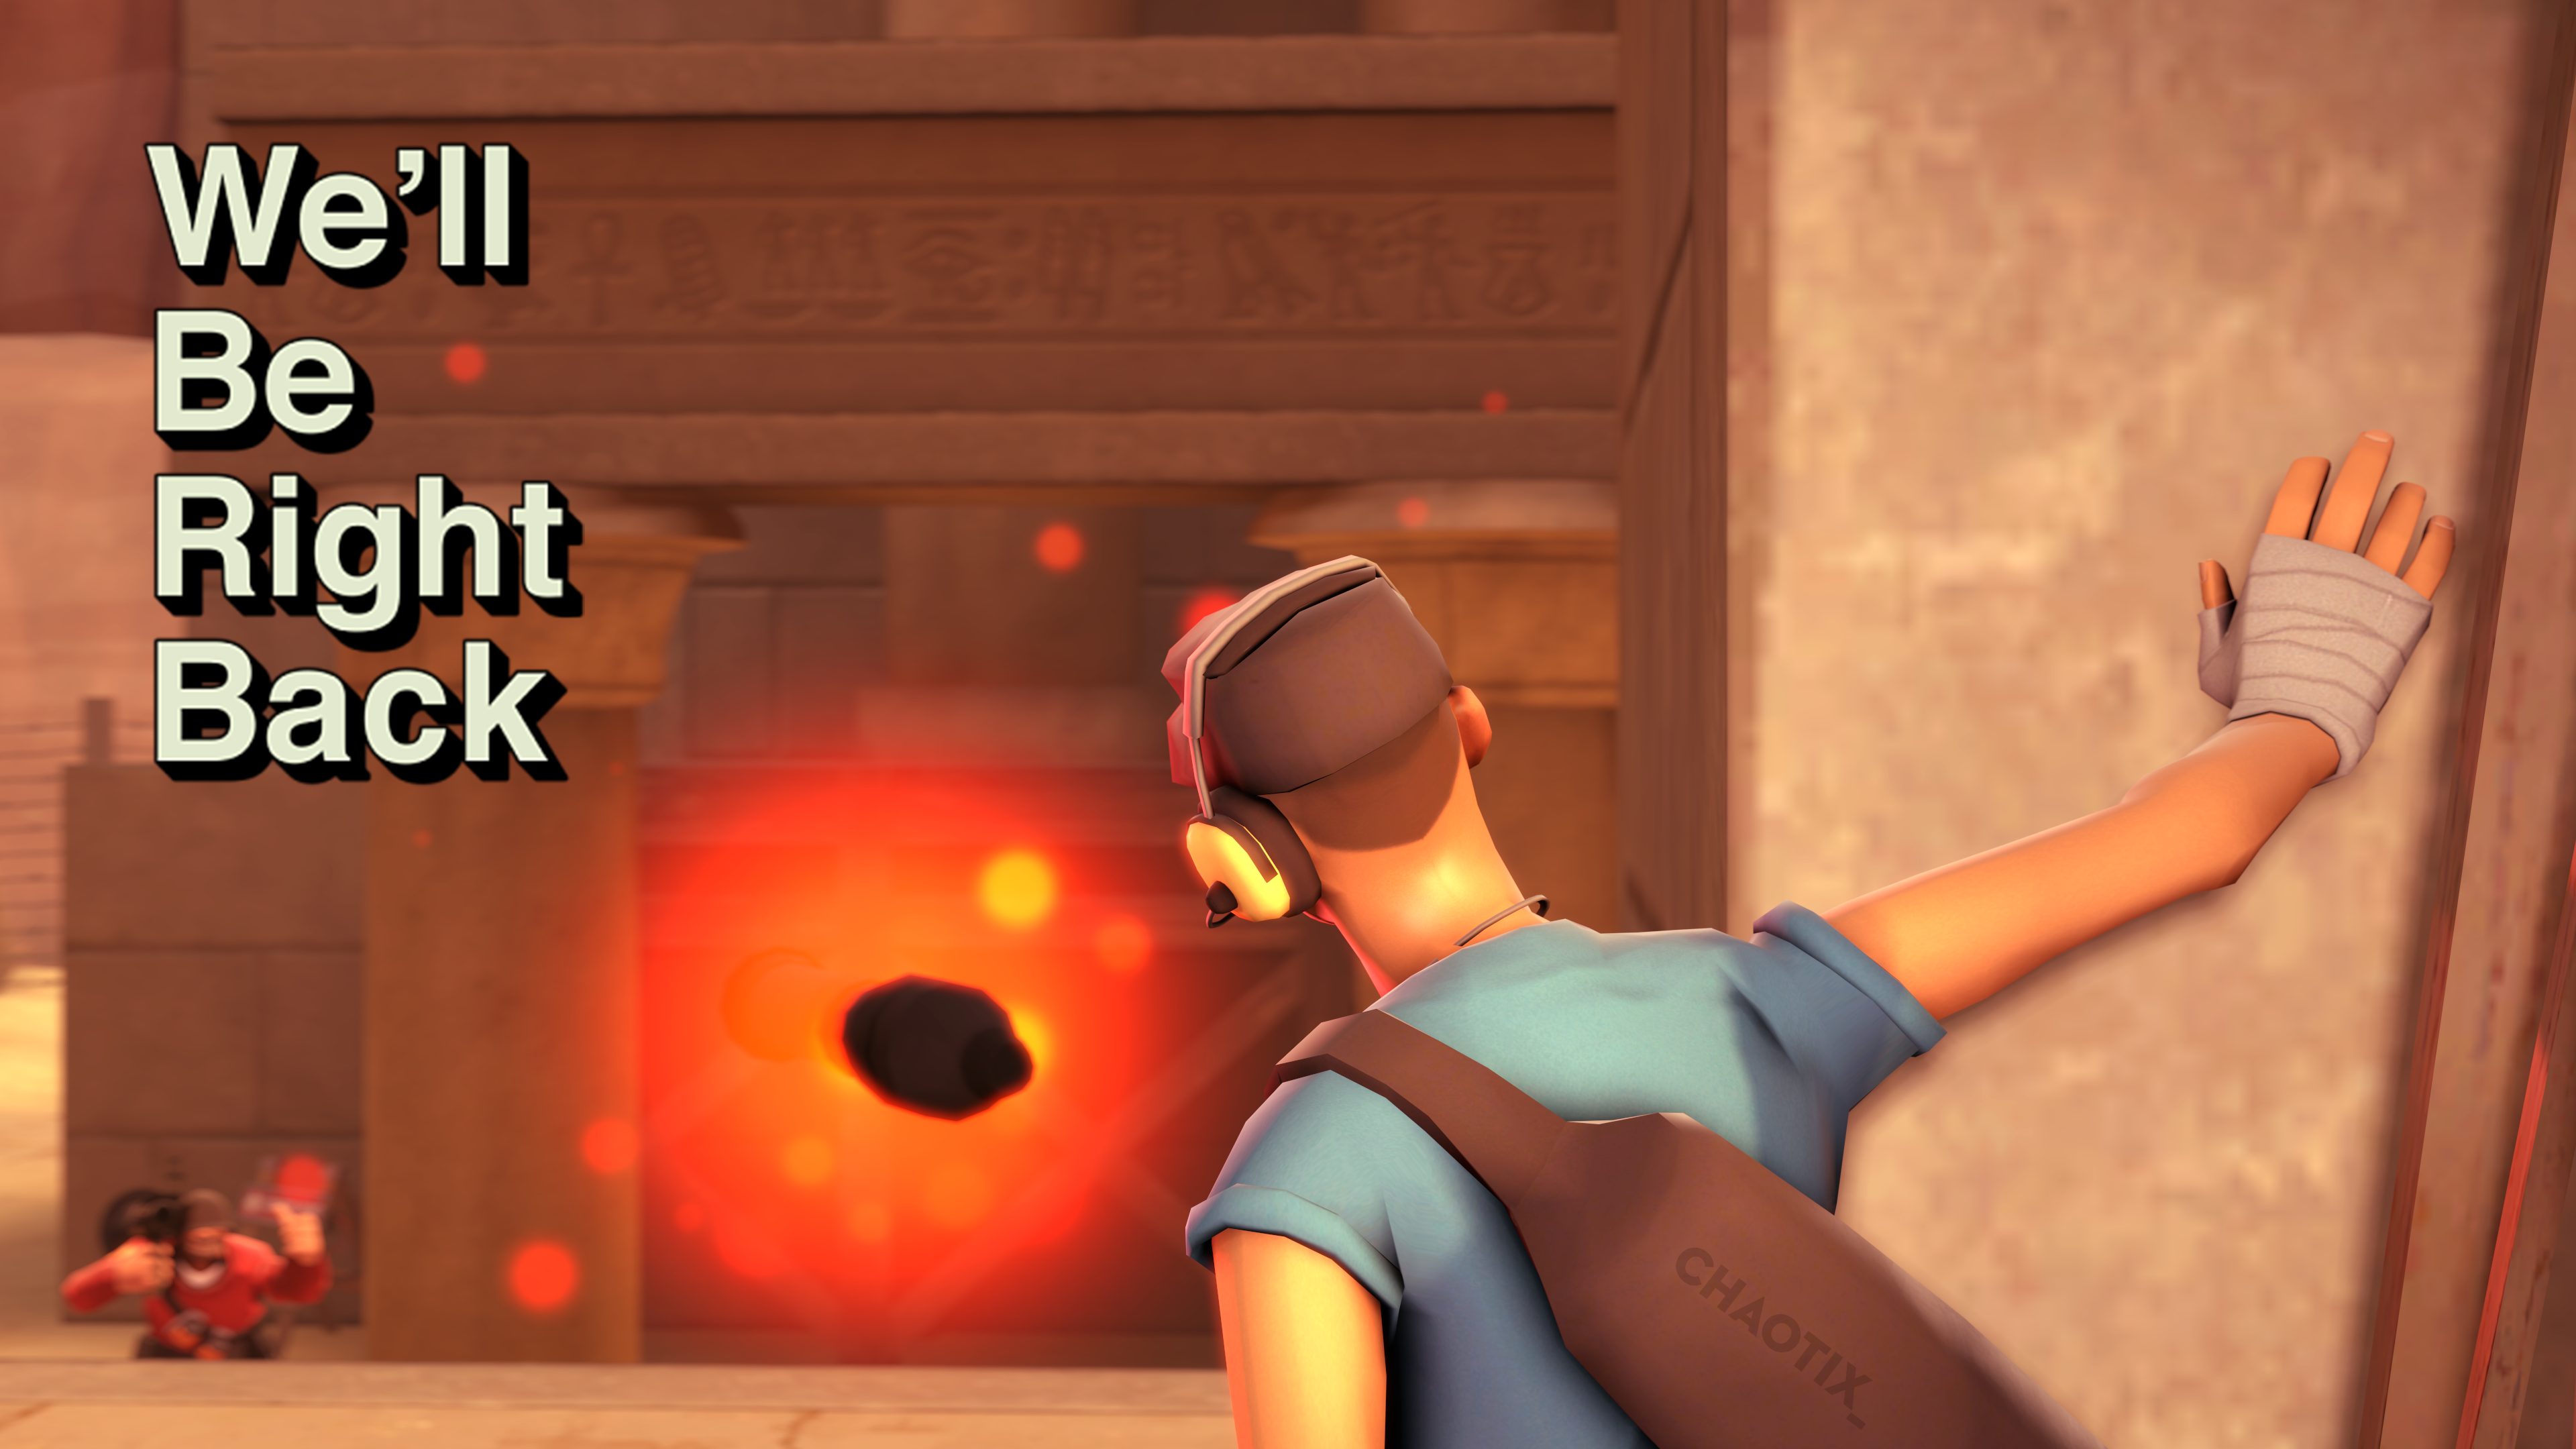 We Ll Be Right Back Games Teamfortress2 Steam Tf2 Steamnewrelease Gaming Valve Team Fortress 2 Team Fortess 2 Team Fortress